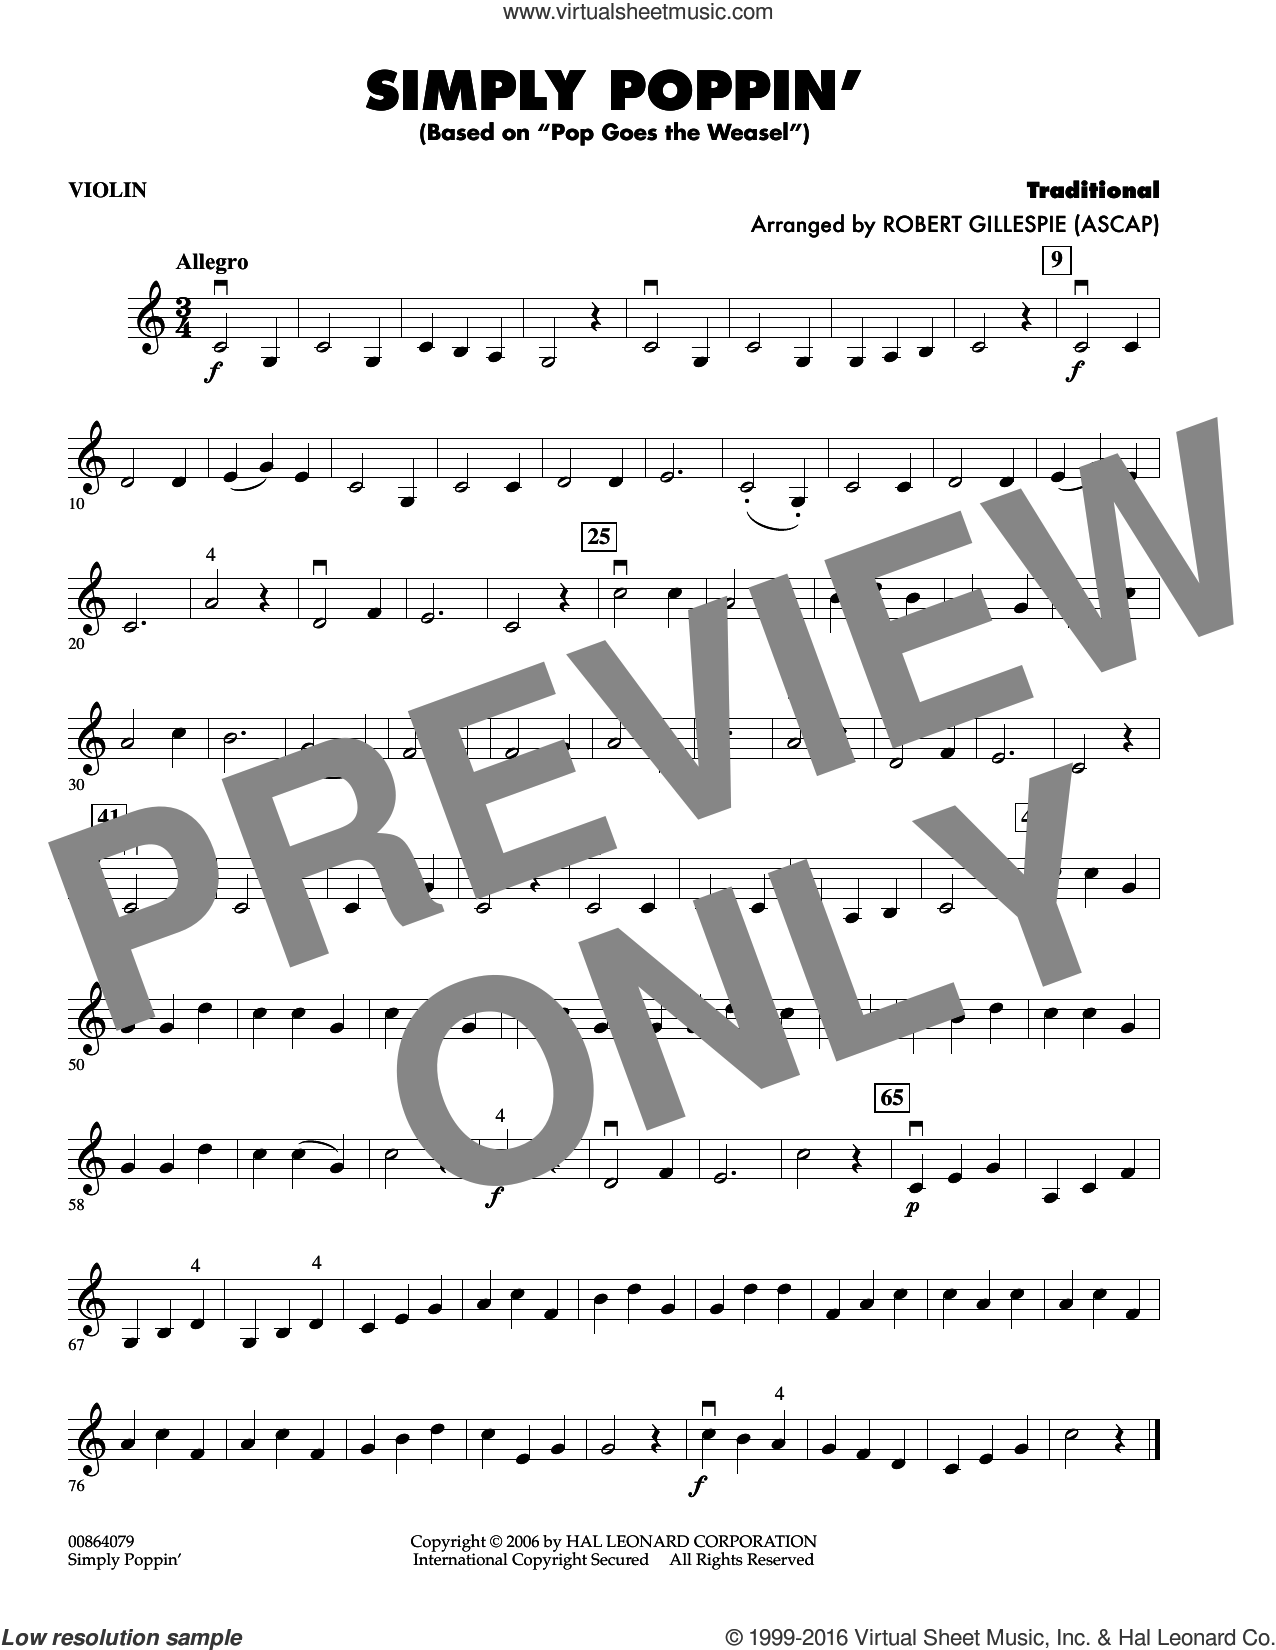 Simply Poppin' (based On Pop Goes The Weasel) sheet music for orchestra (violin) by Robert Gillespie, intermediate skill level